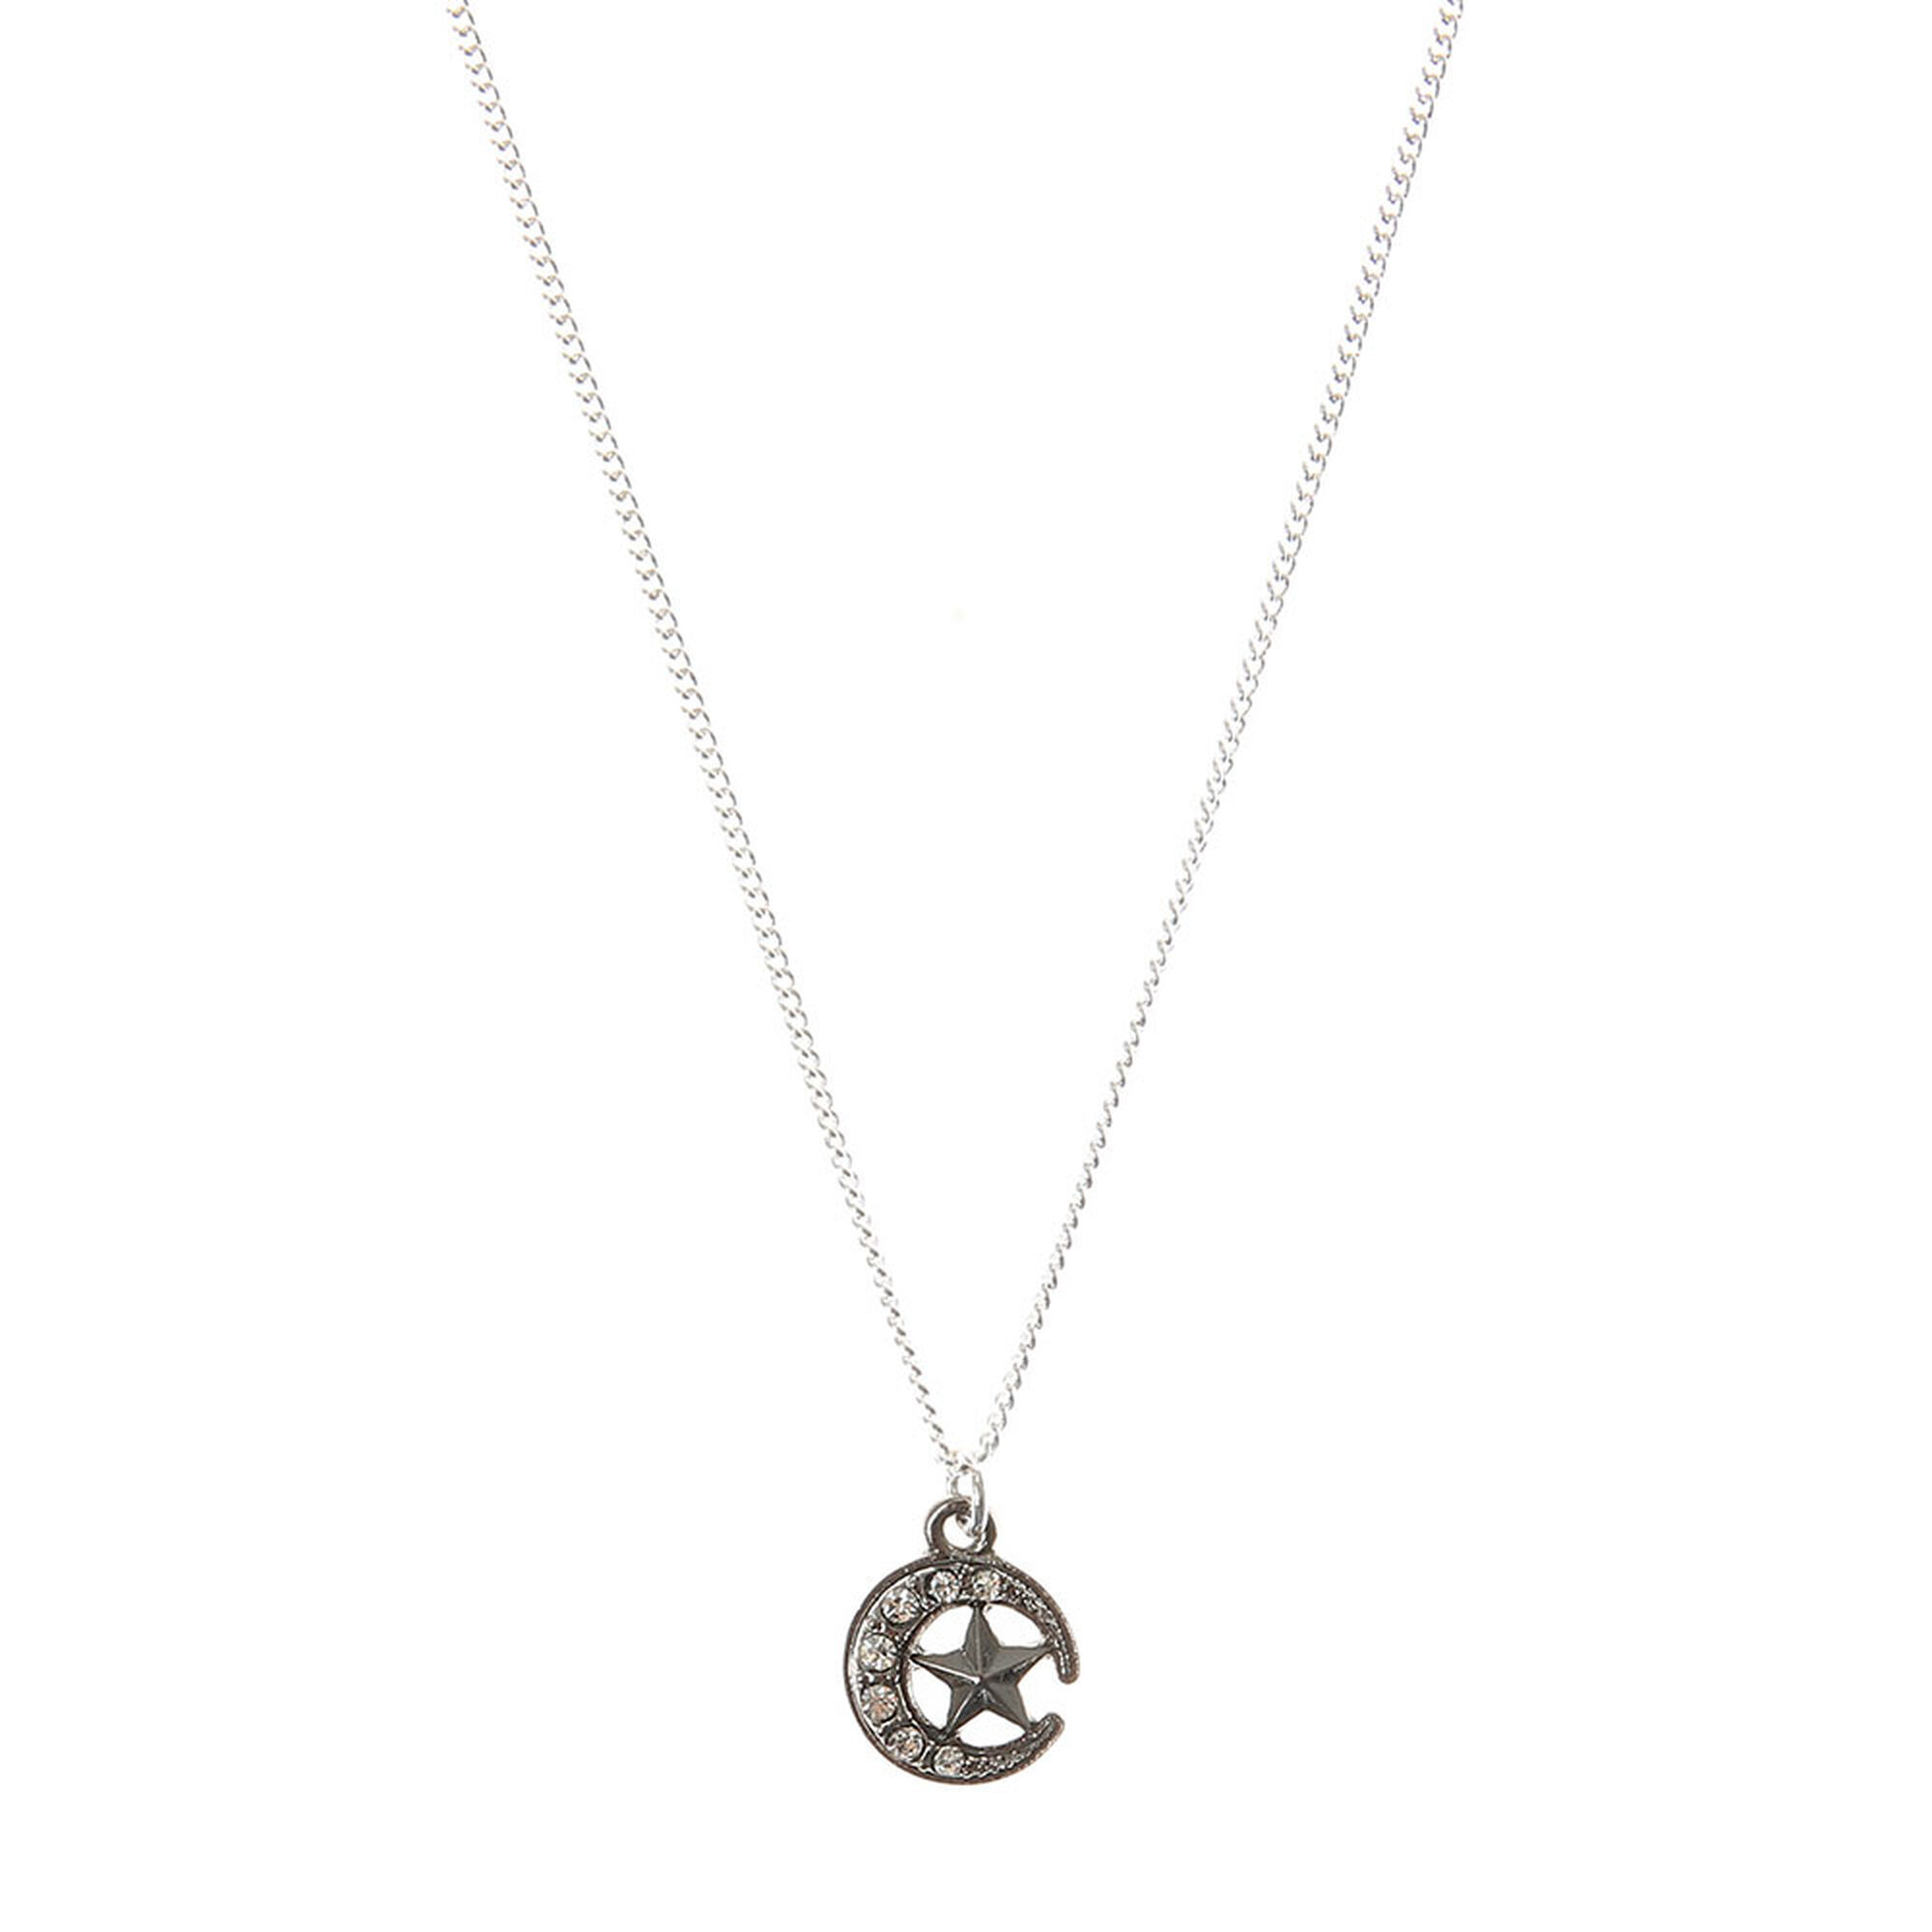 Moon and star pendant necklace claires us moon and star pendant necklace aloadofball Gallery